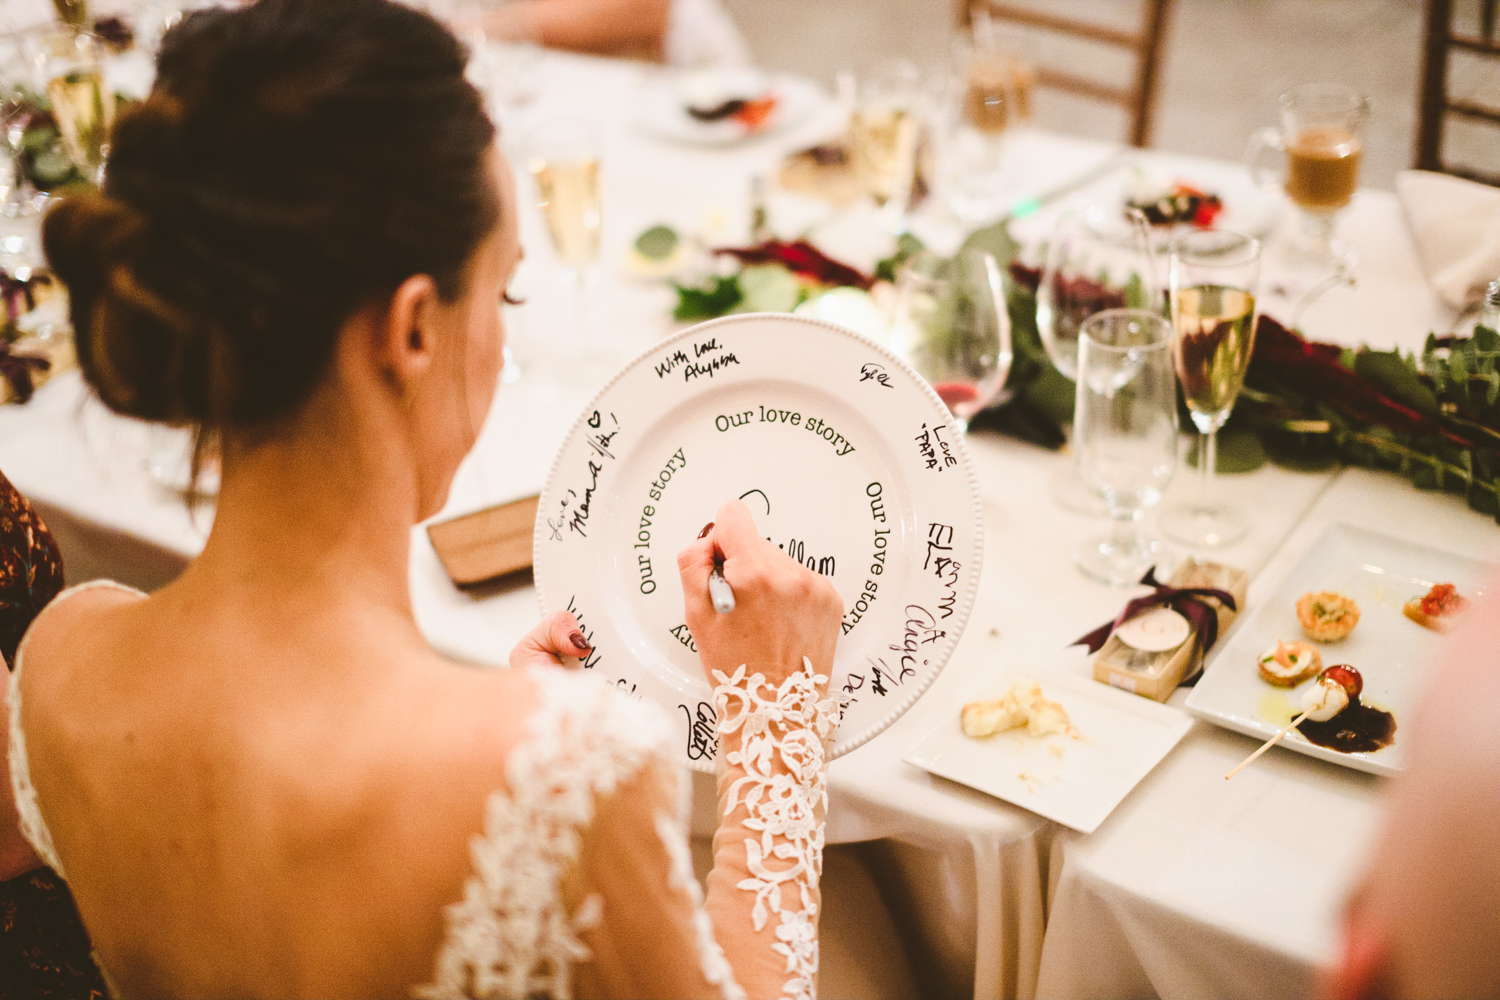 033 - bride signs a guestbook decorative plate that will go into their home.jpg